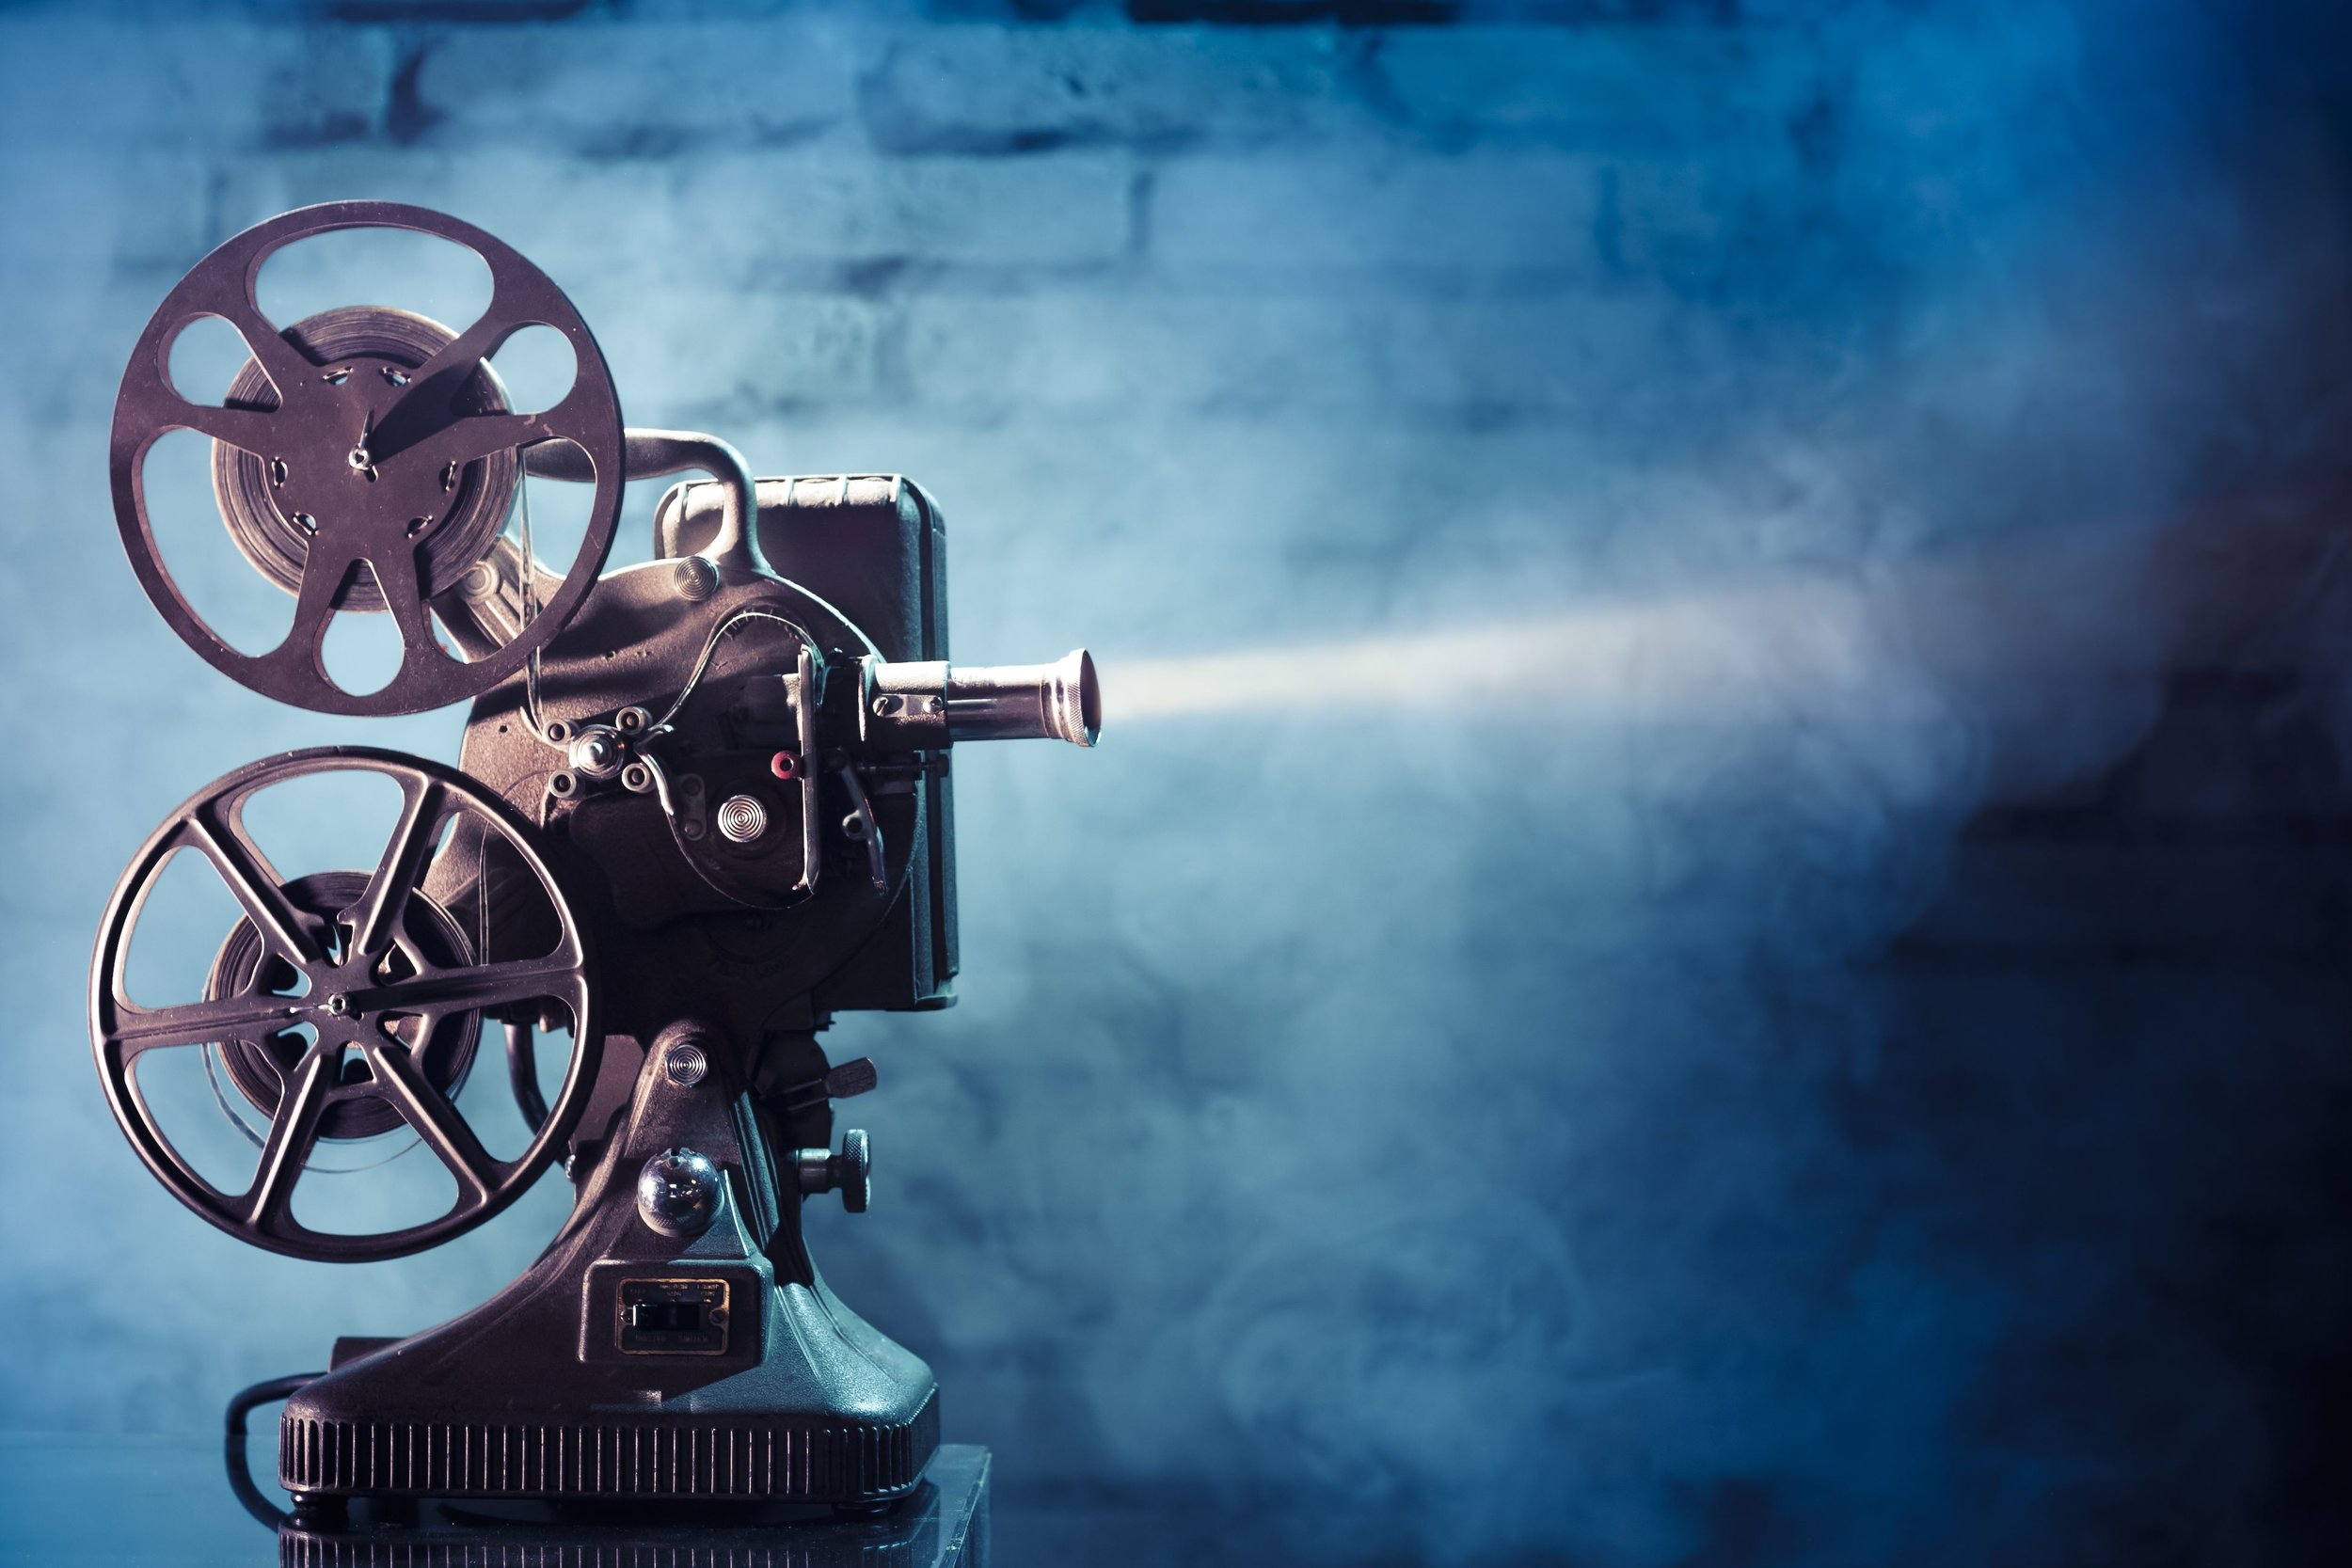 Hinton Movies Information - For Showtimes, Upcoming Films, and General enquiries about Hinton Movies, please click the links below or phone (780)817-6340!